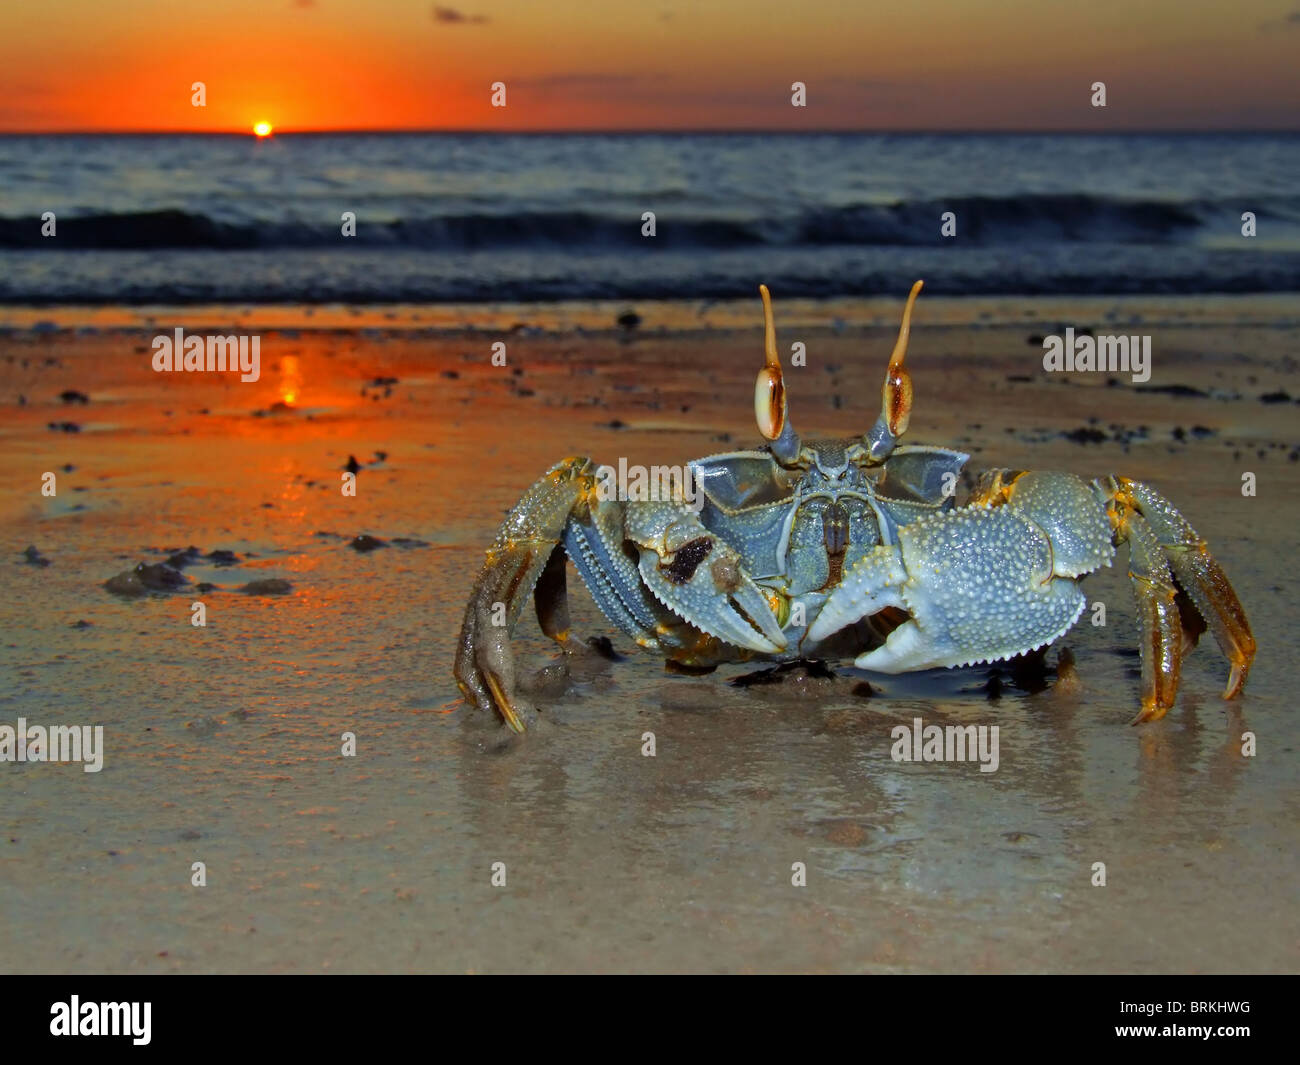 Ghost crab (Ocypode sp.) on the beach at sunset, Mozambique, southern Africa - Stock Image